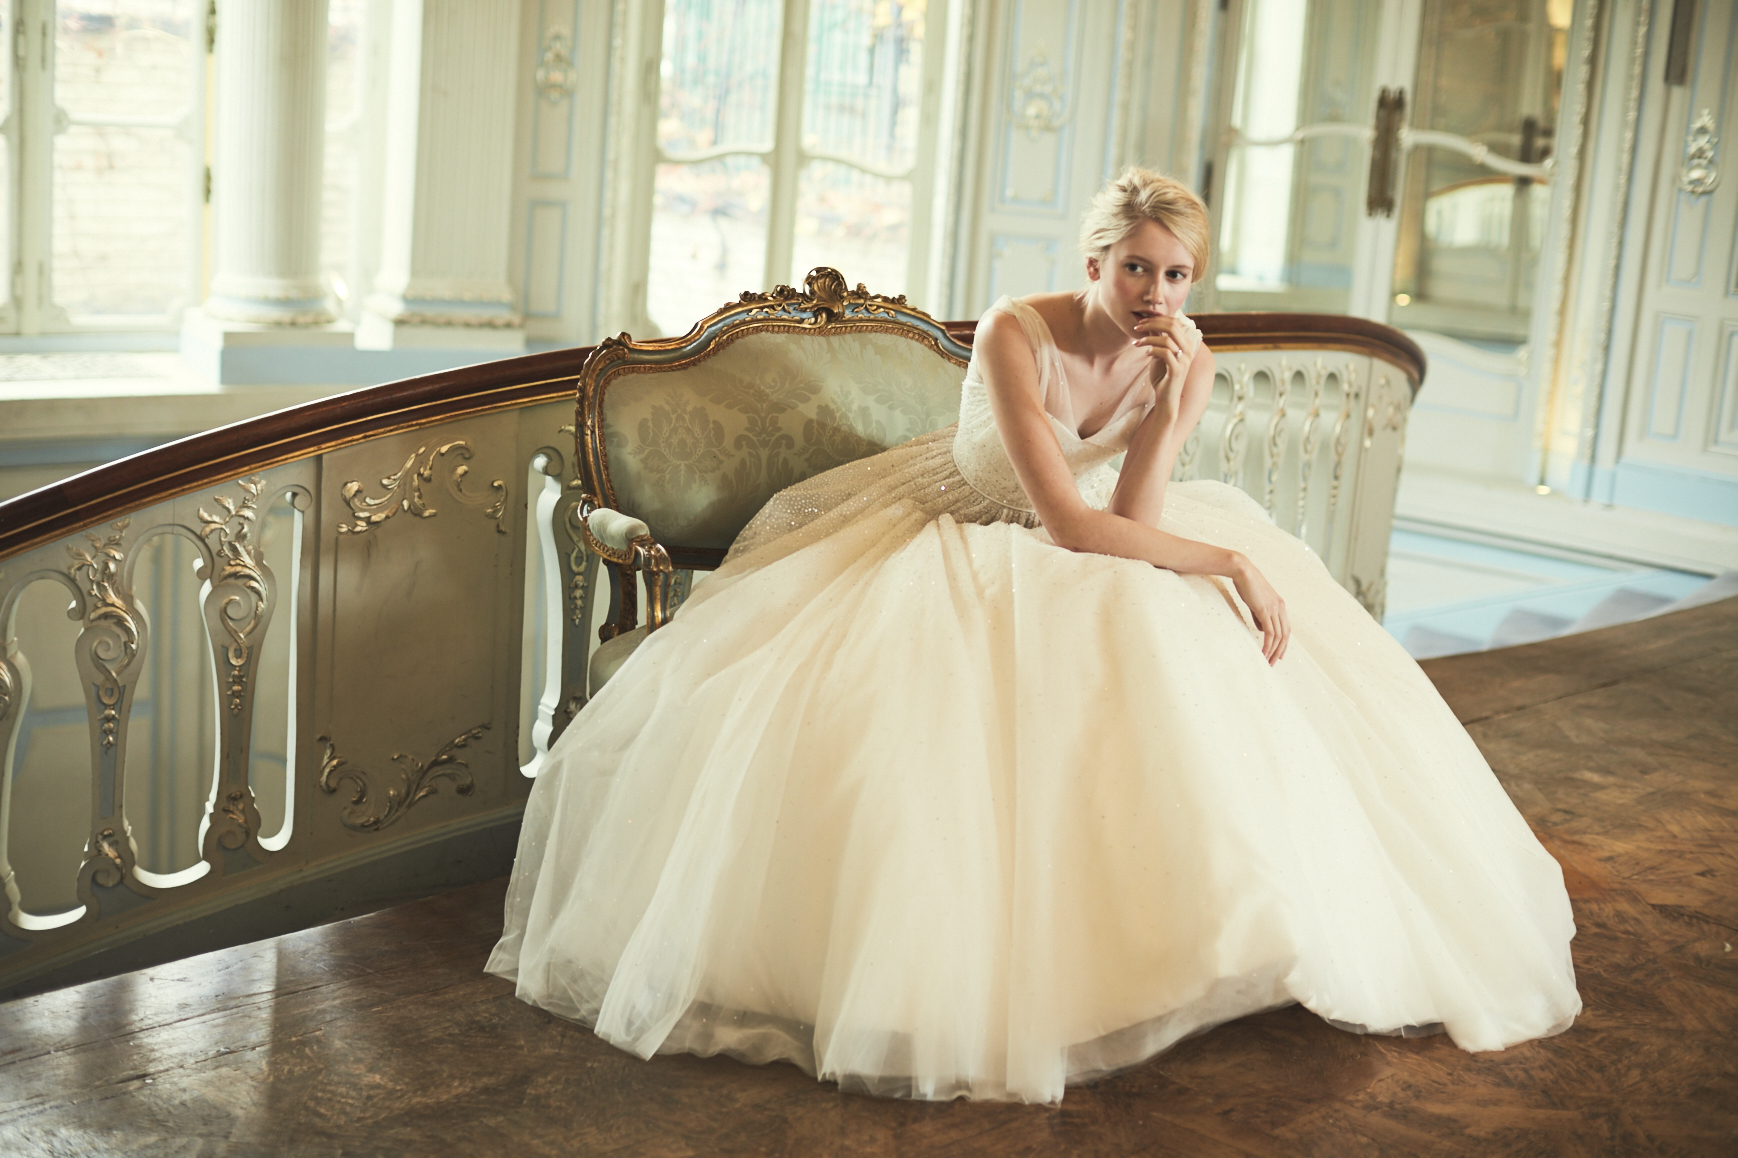 COUTURE WEDDING DRESS – WHITE CINDERELLA